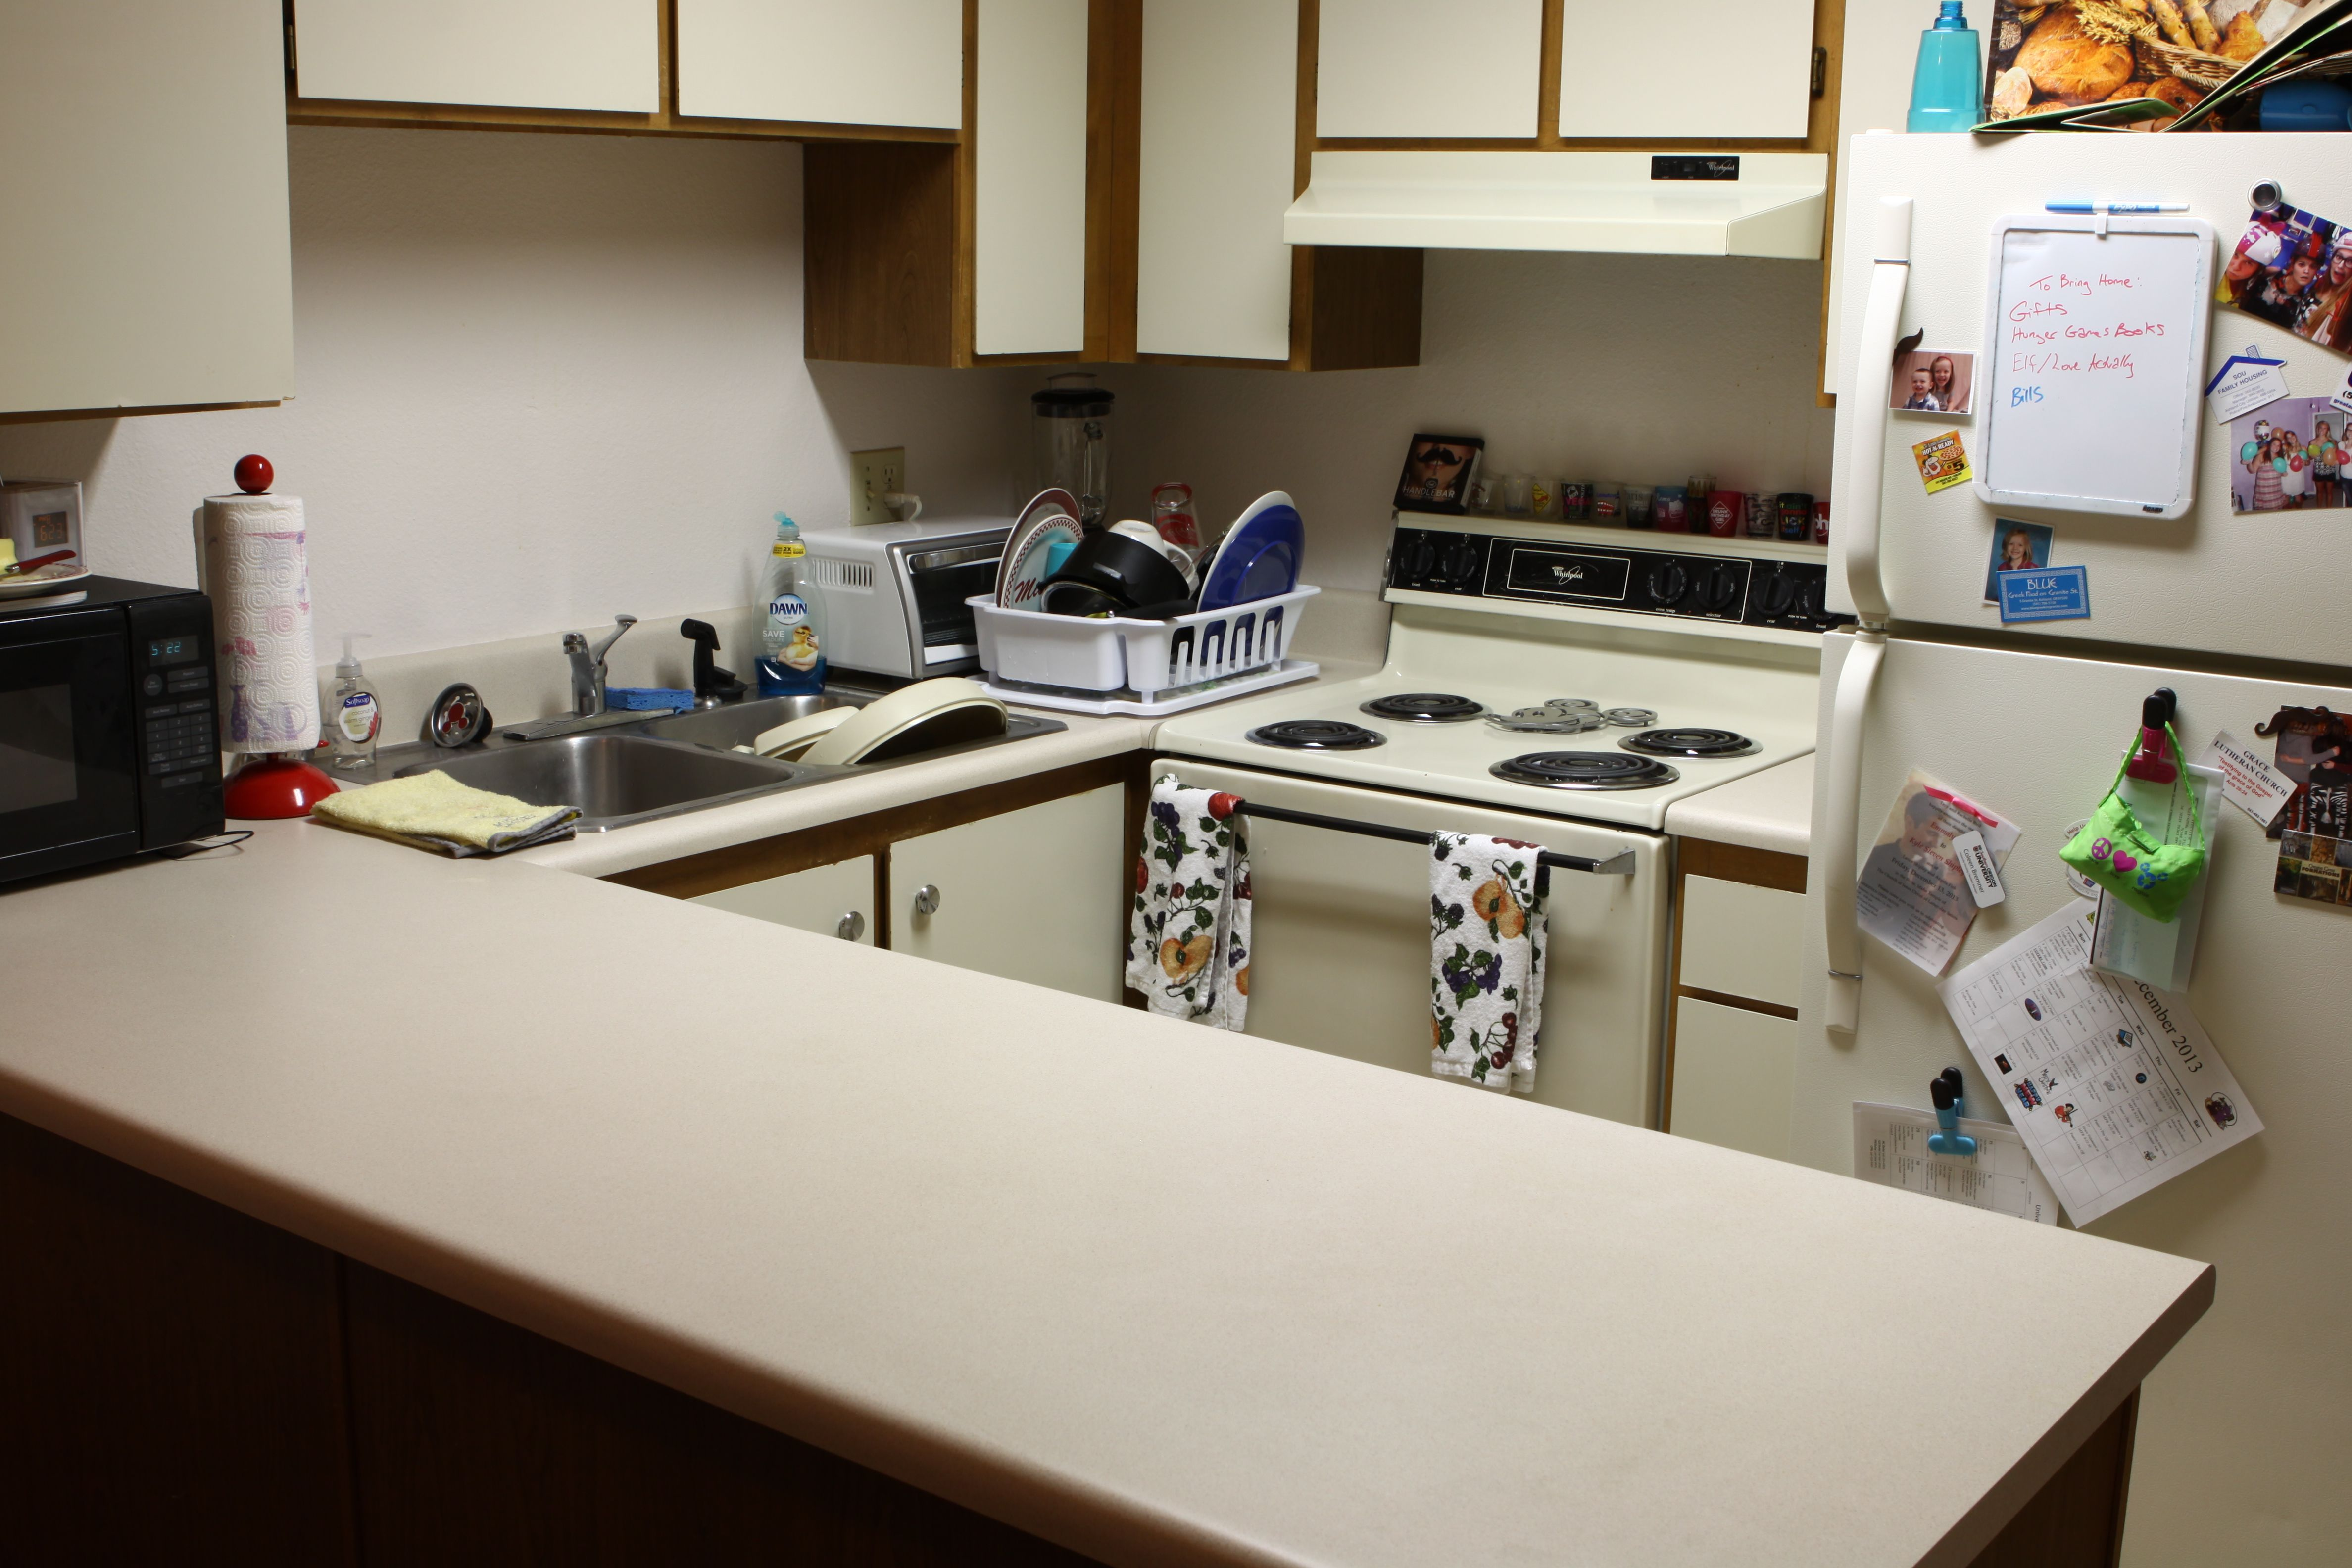 Quincy 2 Bedroom Townhouse Kitchen